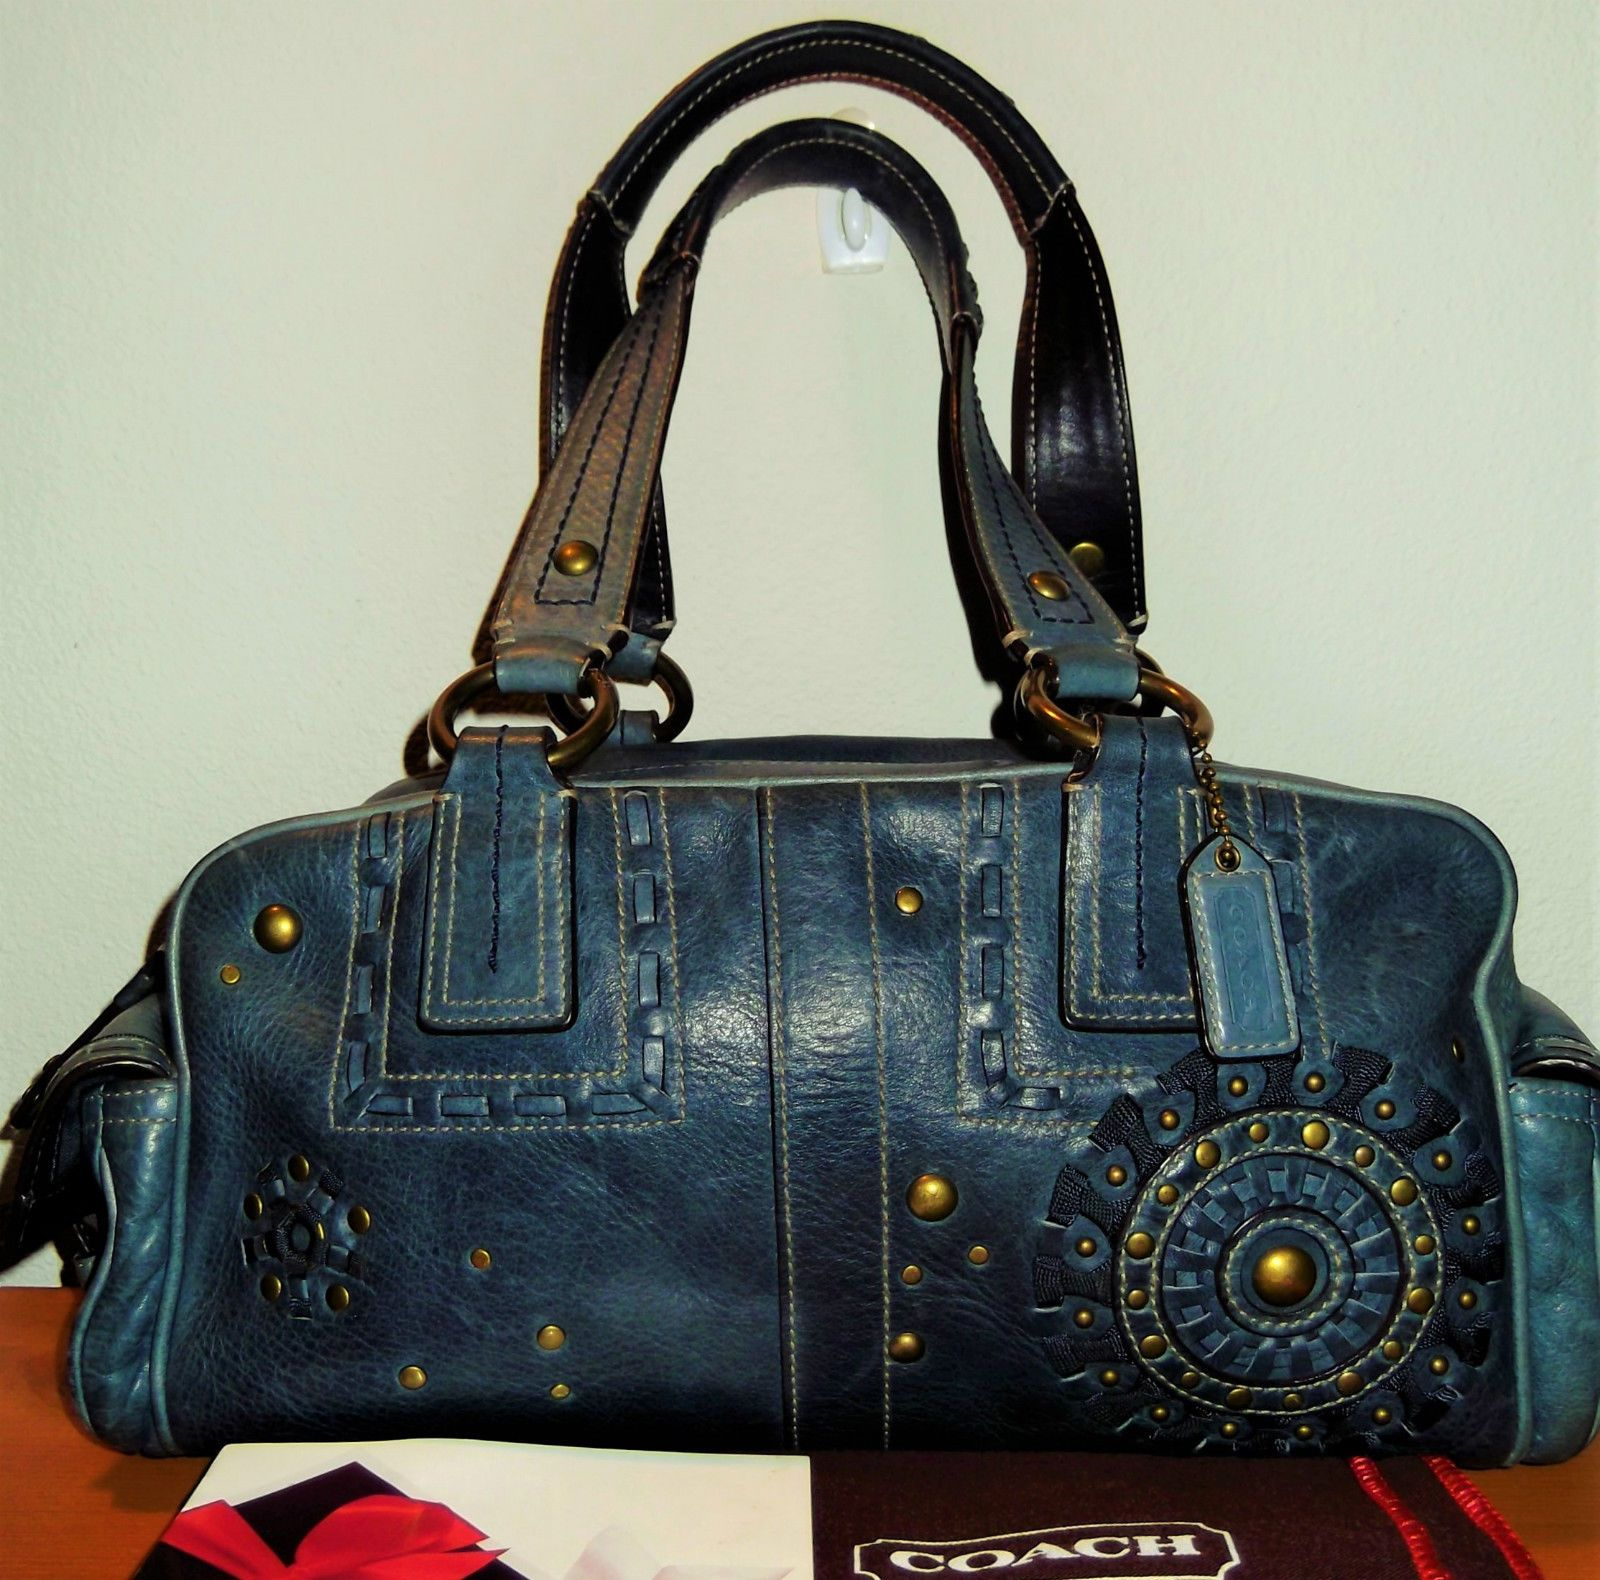 Large Coach Studded Leather Handbag Satchel Shoulderbag In Blue Vguc 10064 Ebay